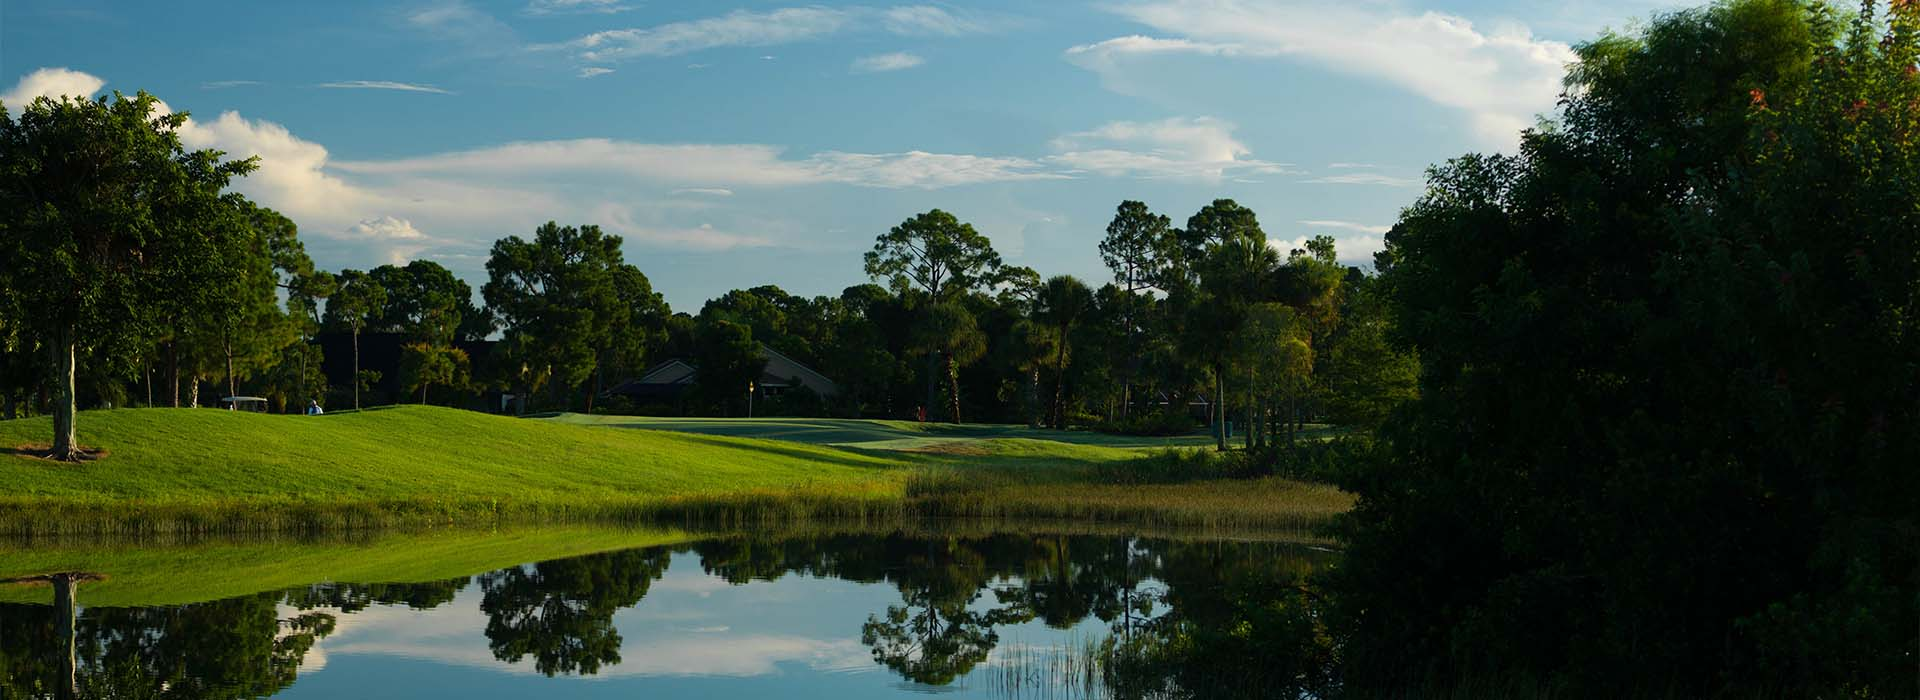 A hole at St. Lucie Trail Golf Club in Port St. Lucie is seen from across a lake